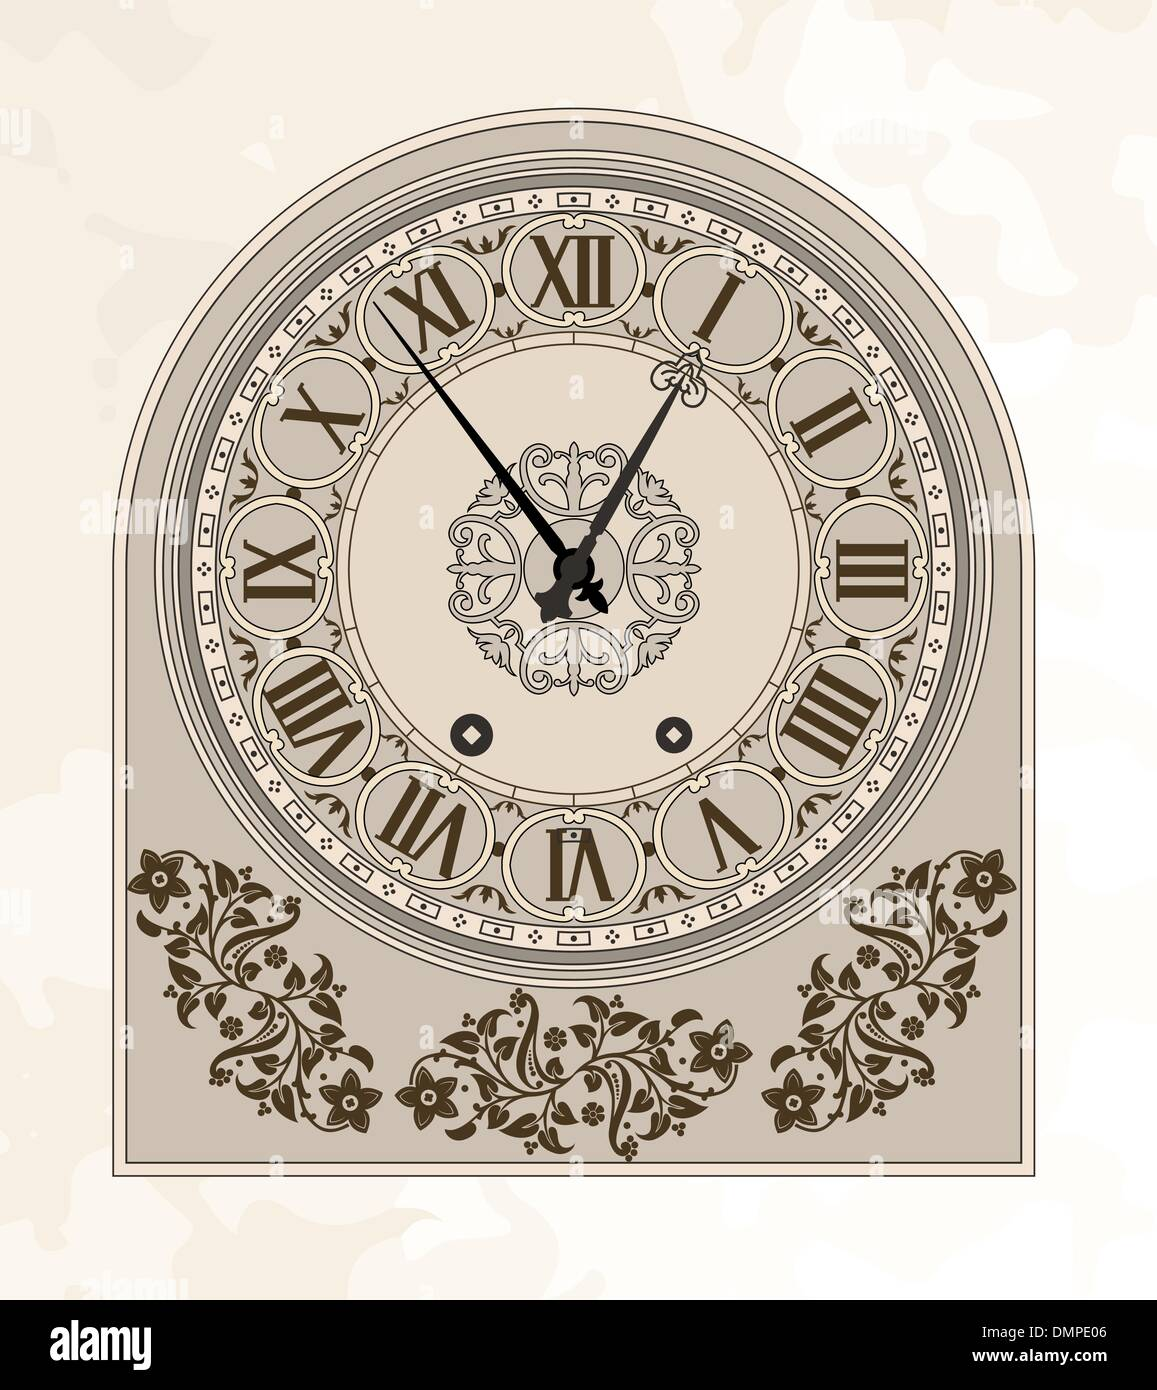 Antique clock - Stock Image